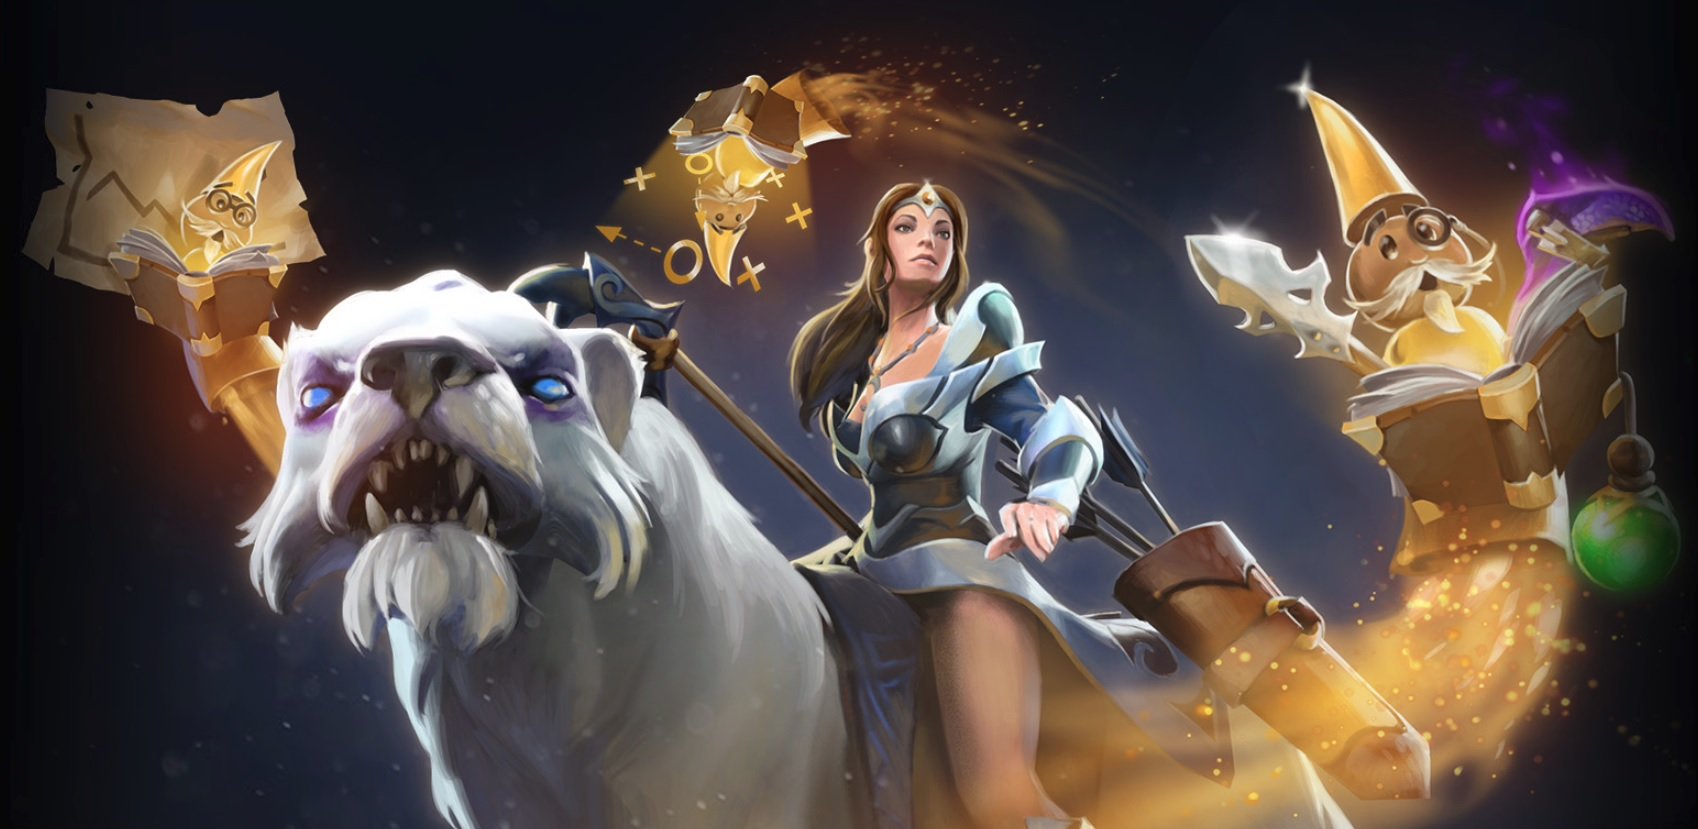 Boost Dota 2 Account: Easy And Quick